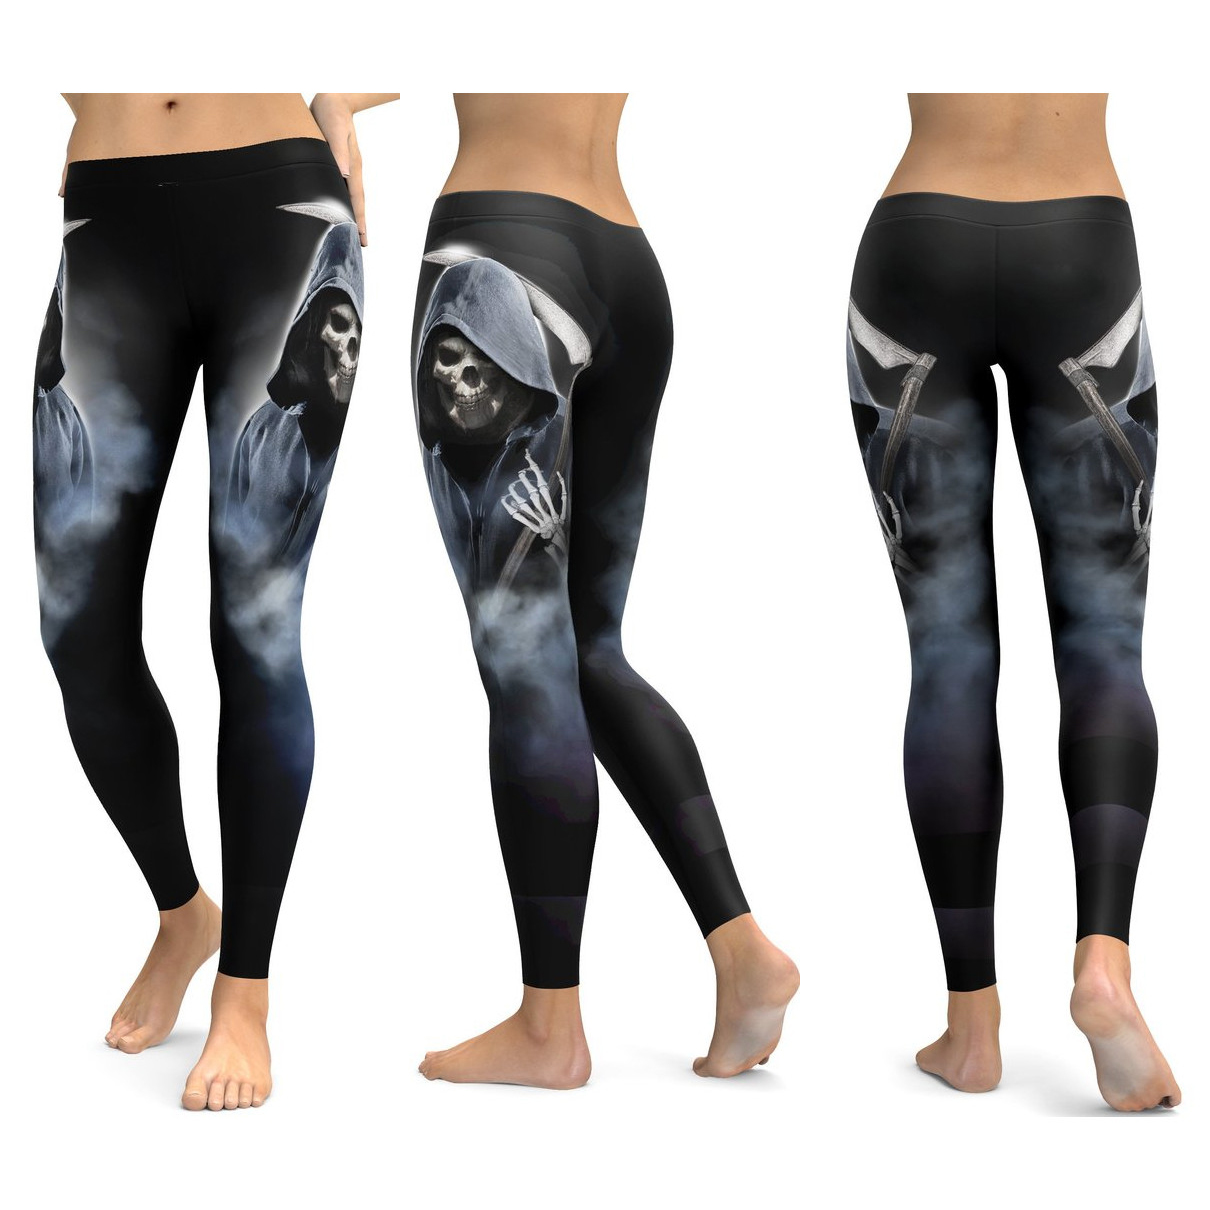 Skull Leggings Yoga Pants Women Sports Pants Fitness Running Sexy Push Up Gym Wear Elastic Slim Workout Leggings 25